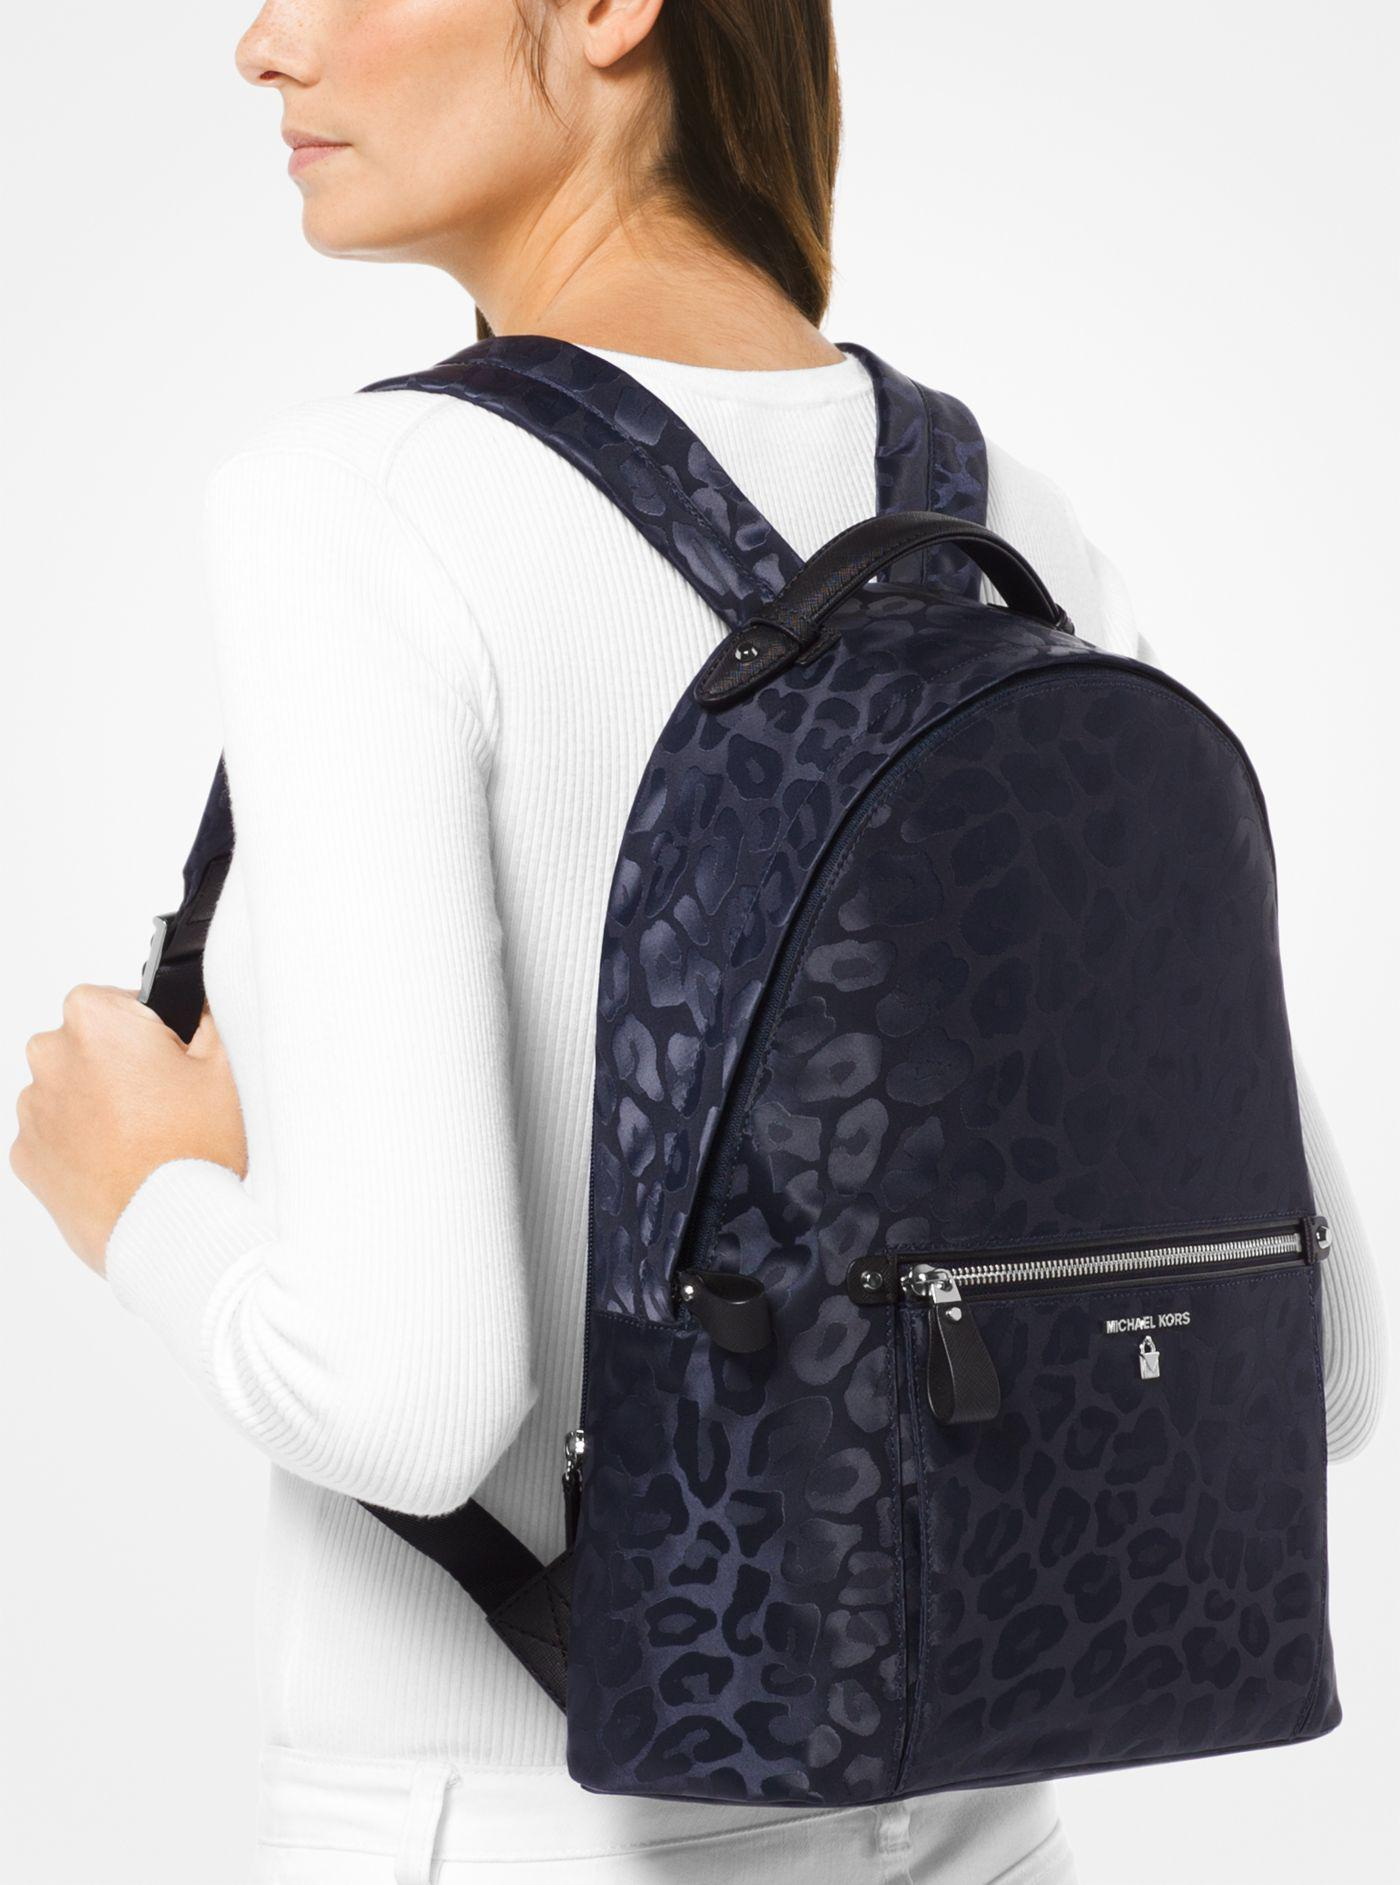 0727464b7574 Michael Kors Kelsey Large Leopard Nylon Backpack in Blue - Lyst